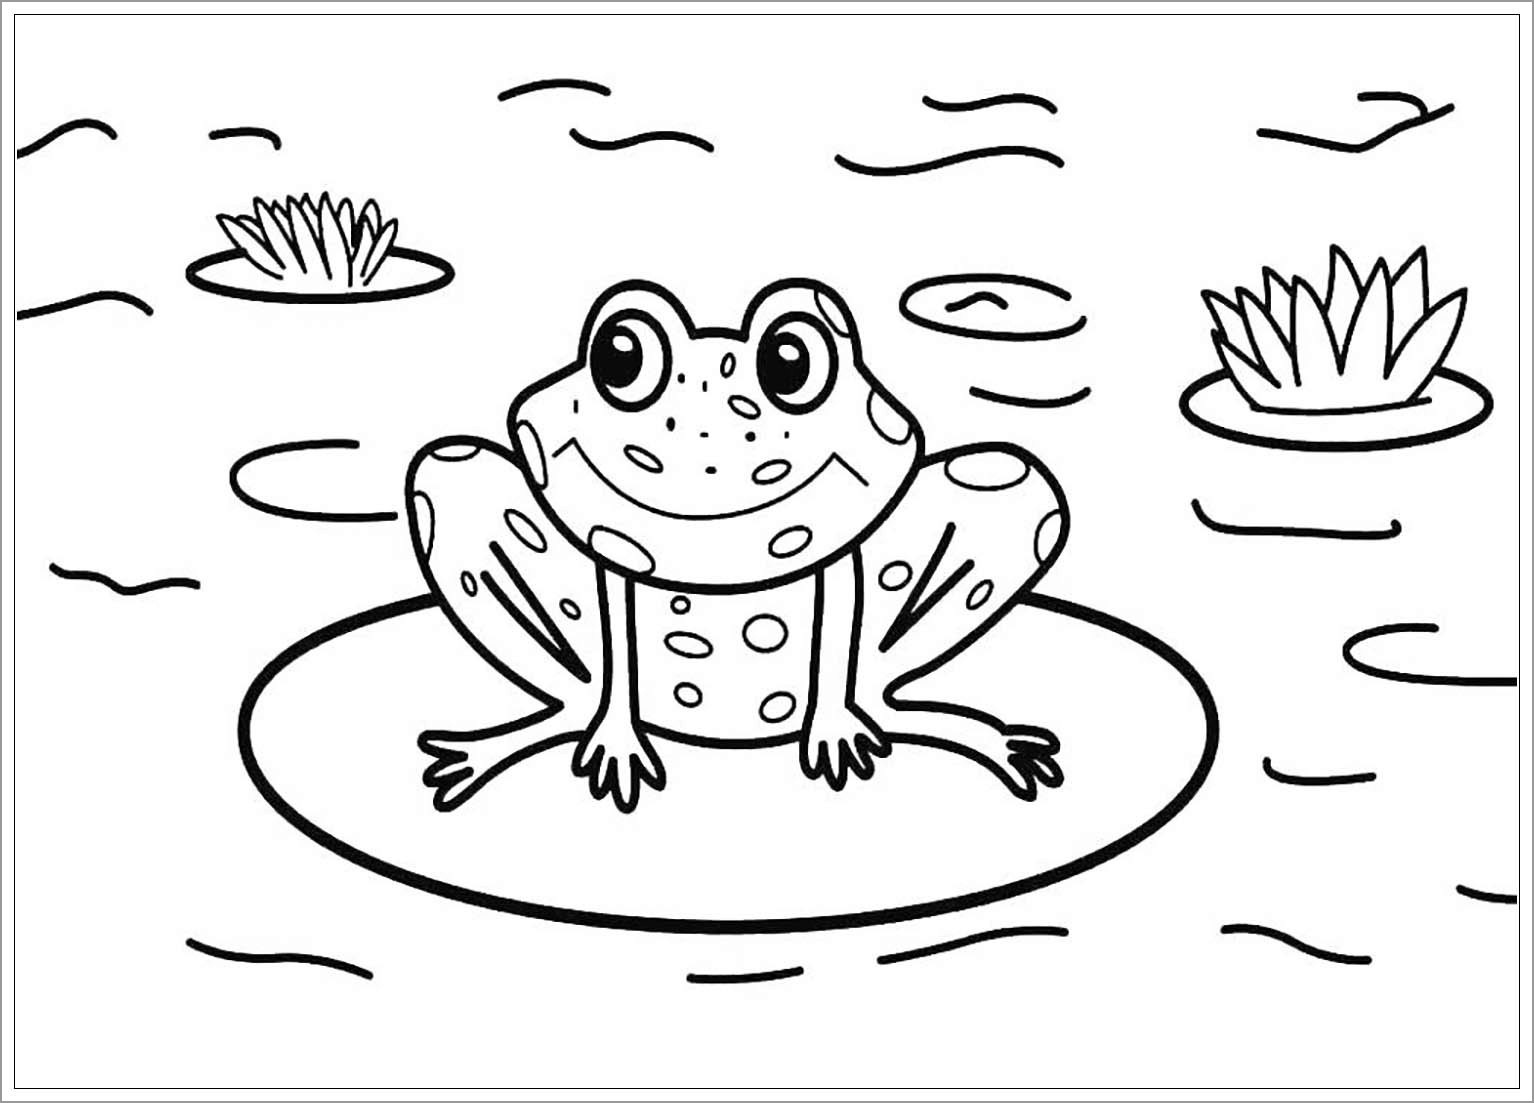 Toads Coloring Page for Kids